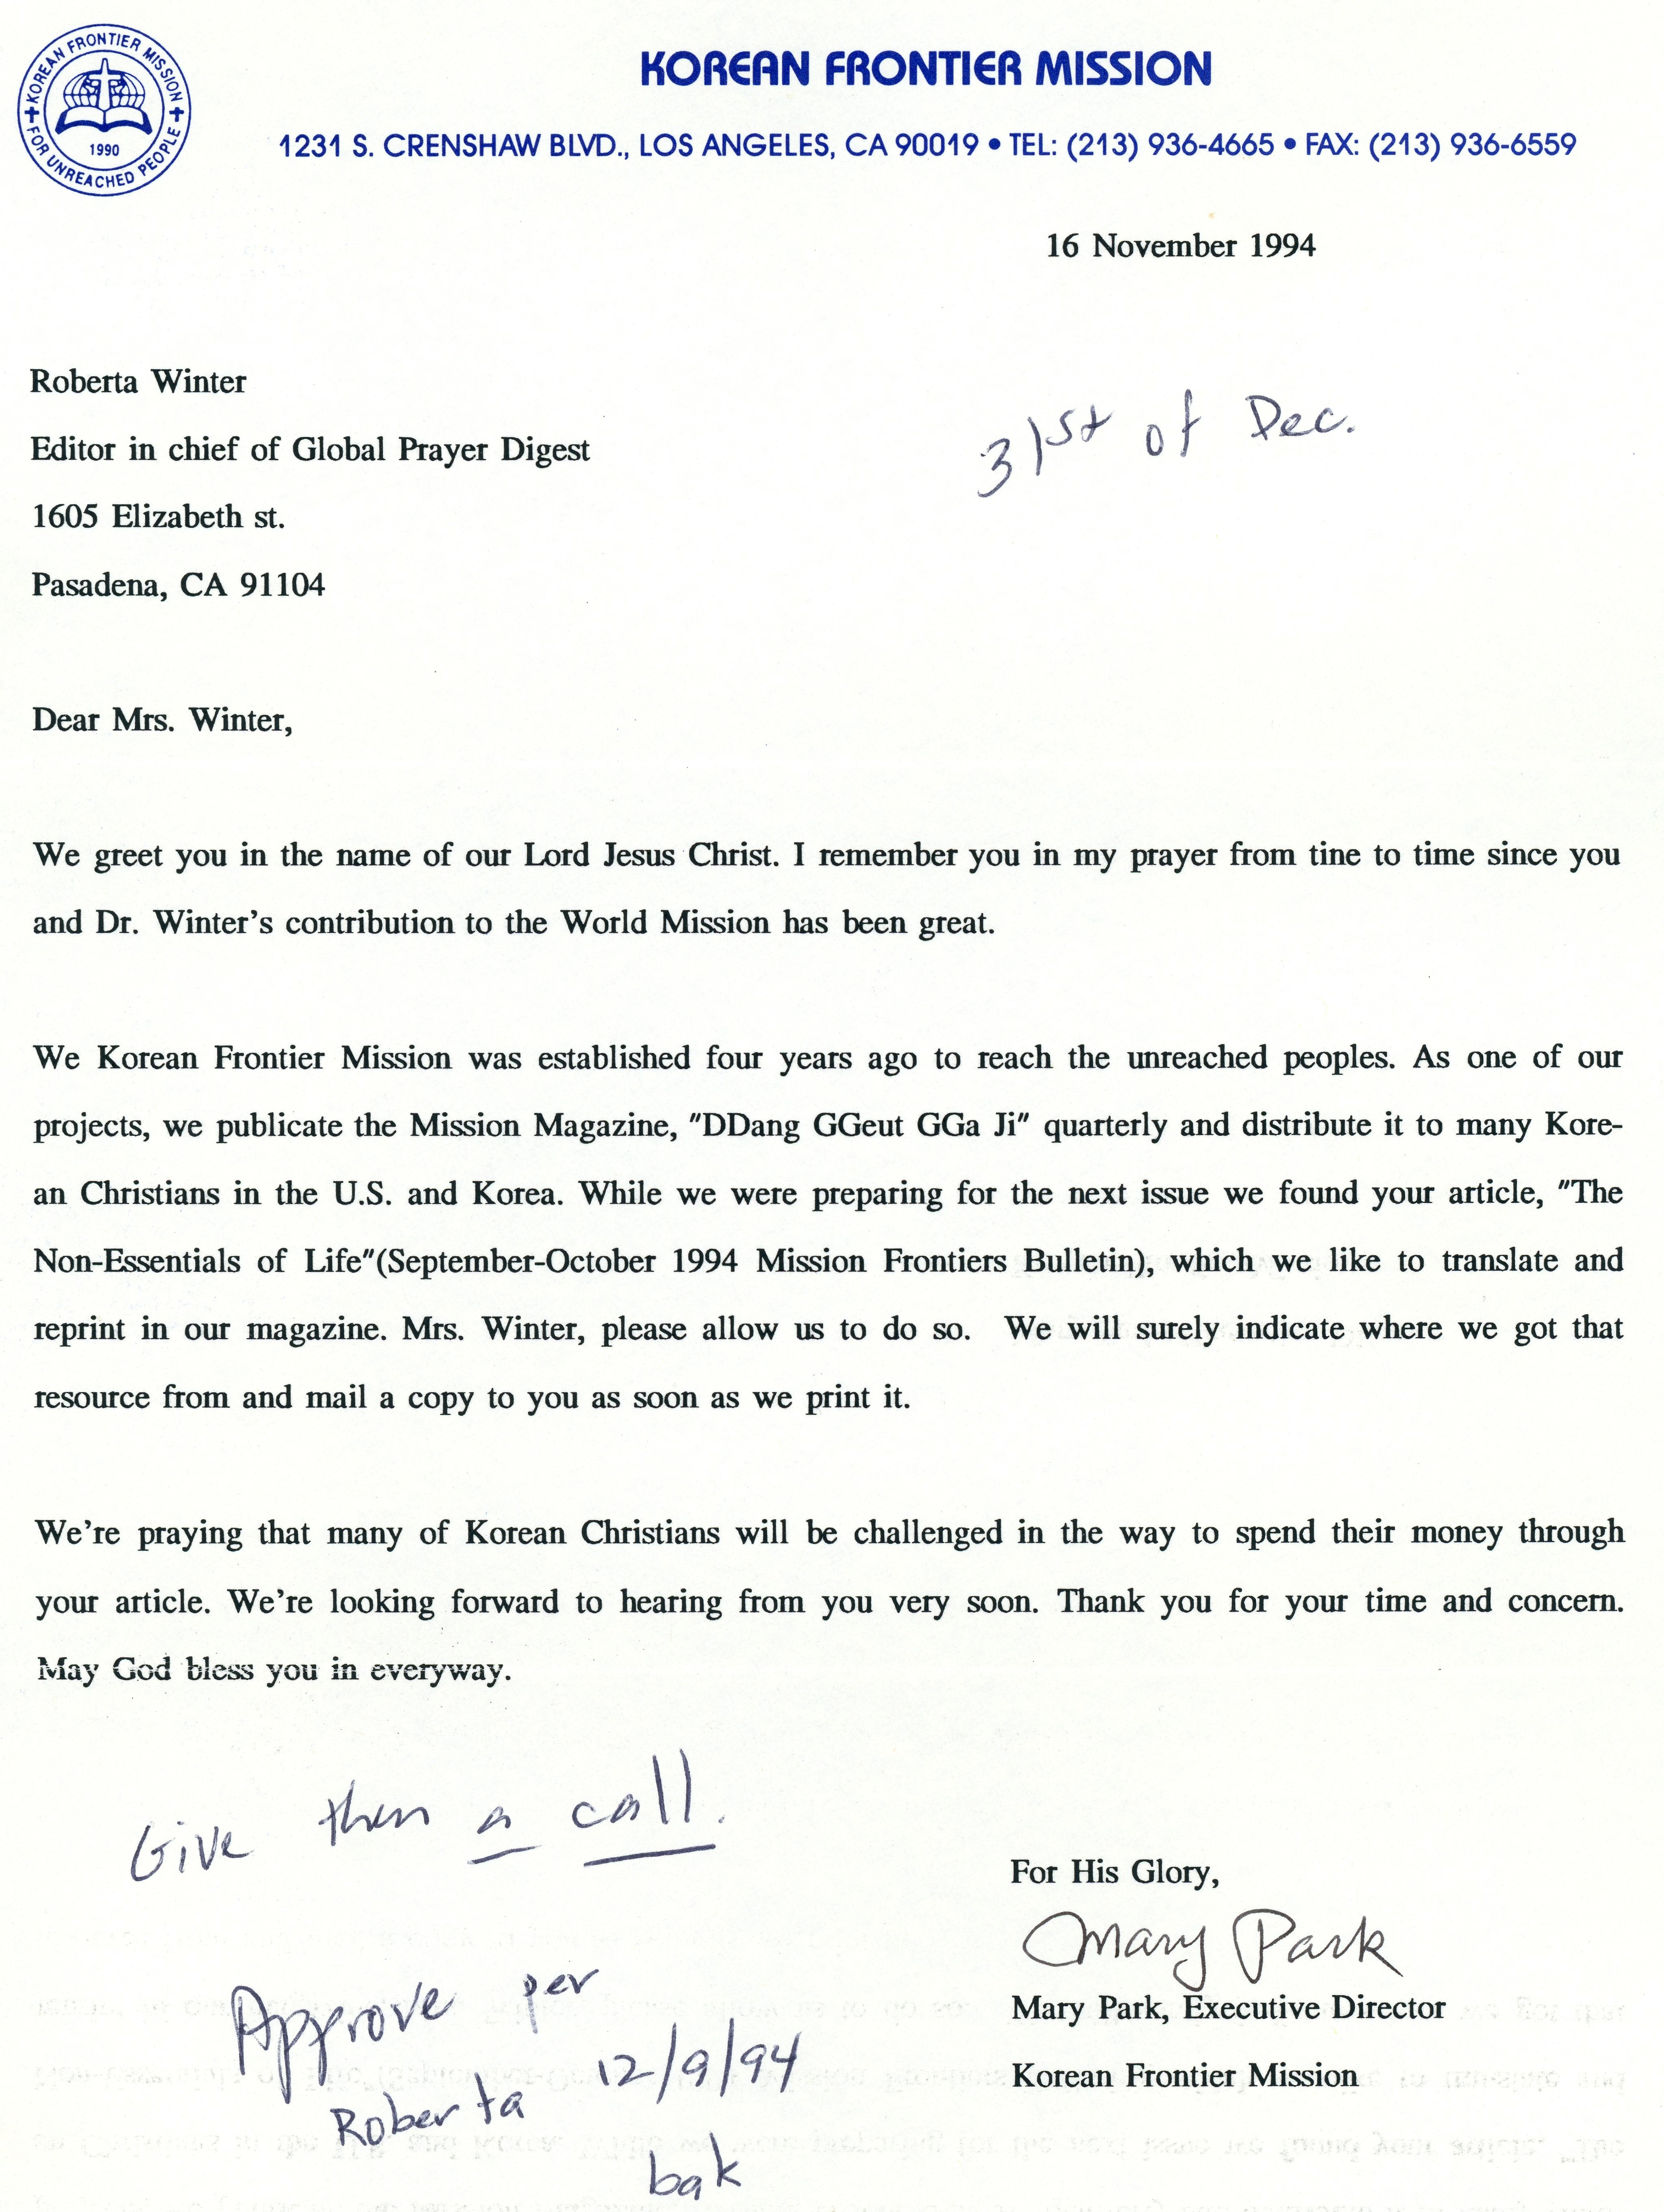 Mary Park to RHW Letter 11 16 1994